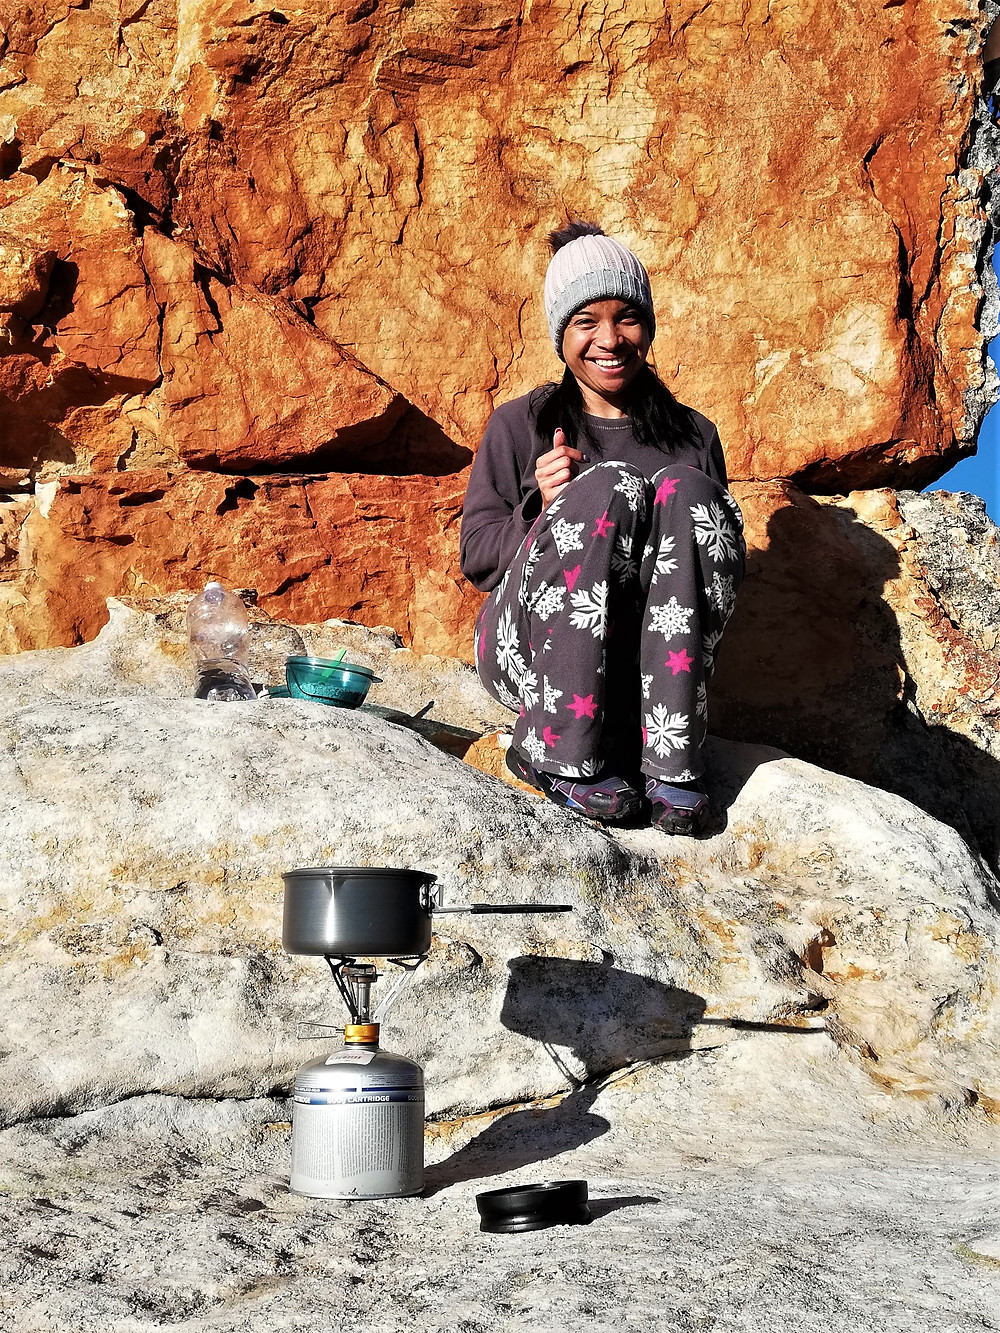 A smiling woman sitting on a rock in front of a rock face with a camping stove in the foreground